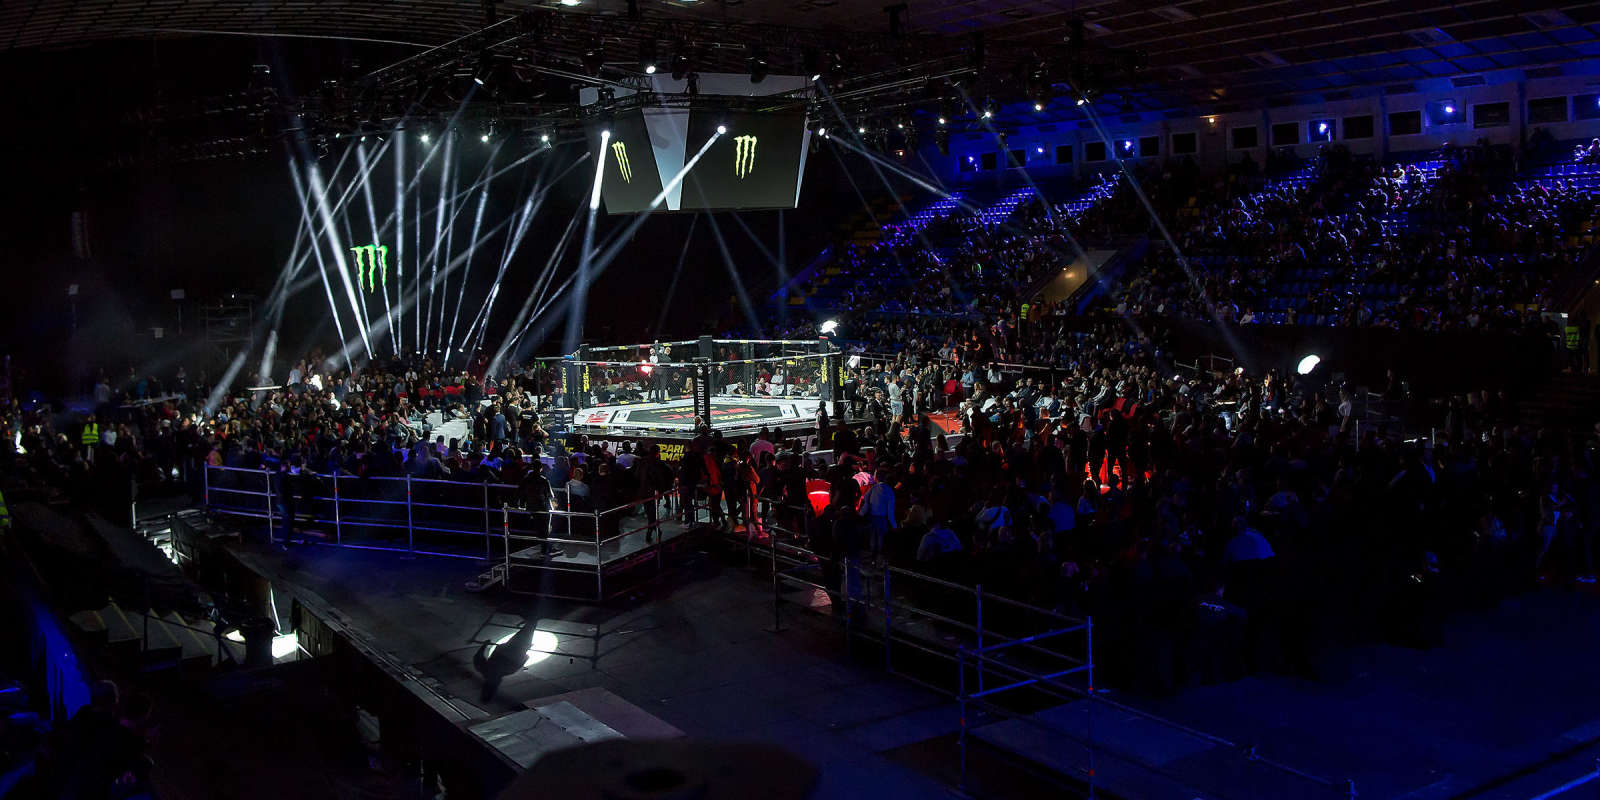 Pictures from WWFC MMA tournament in Kyiv, Ukraine